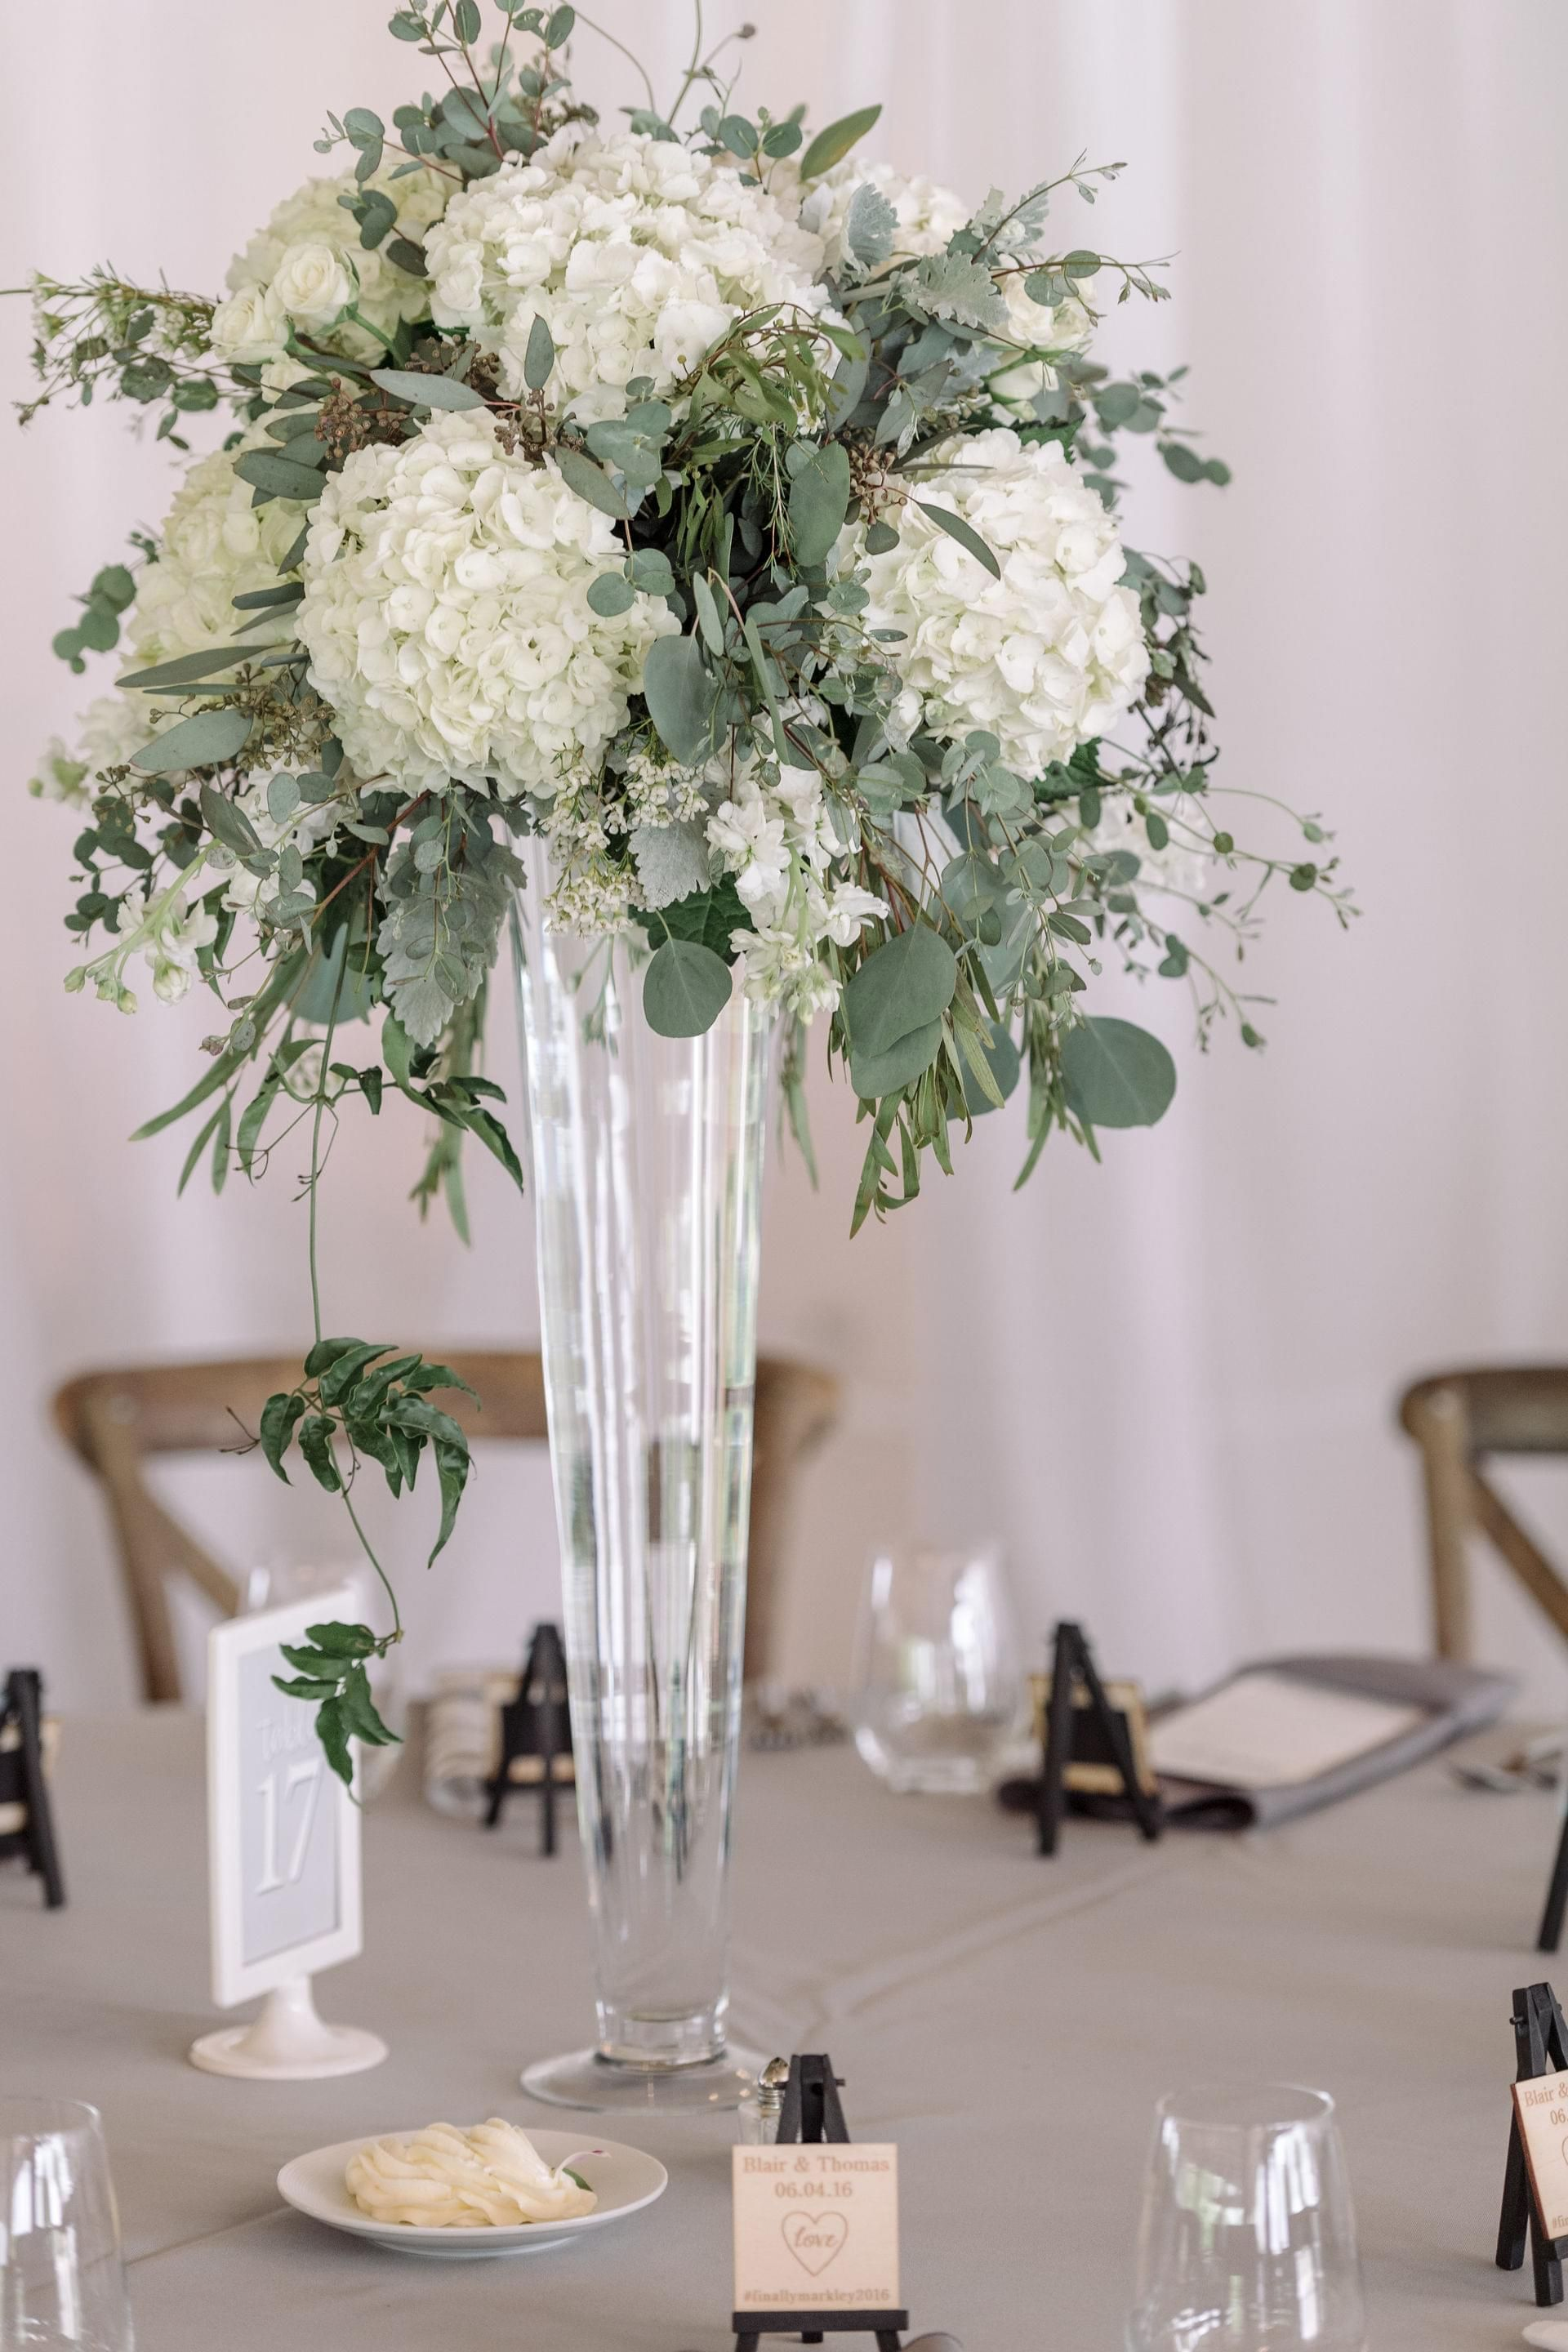 Floral centerpieces tall wedding centerpieces white and